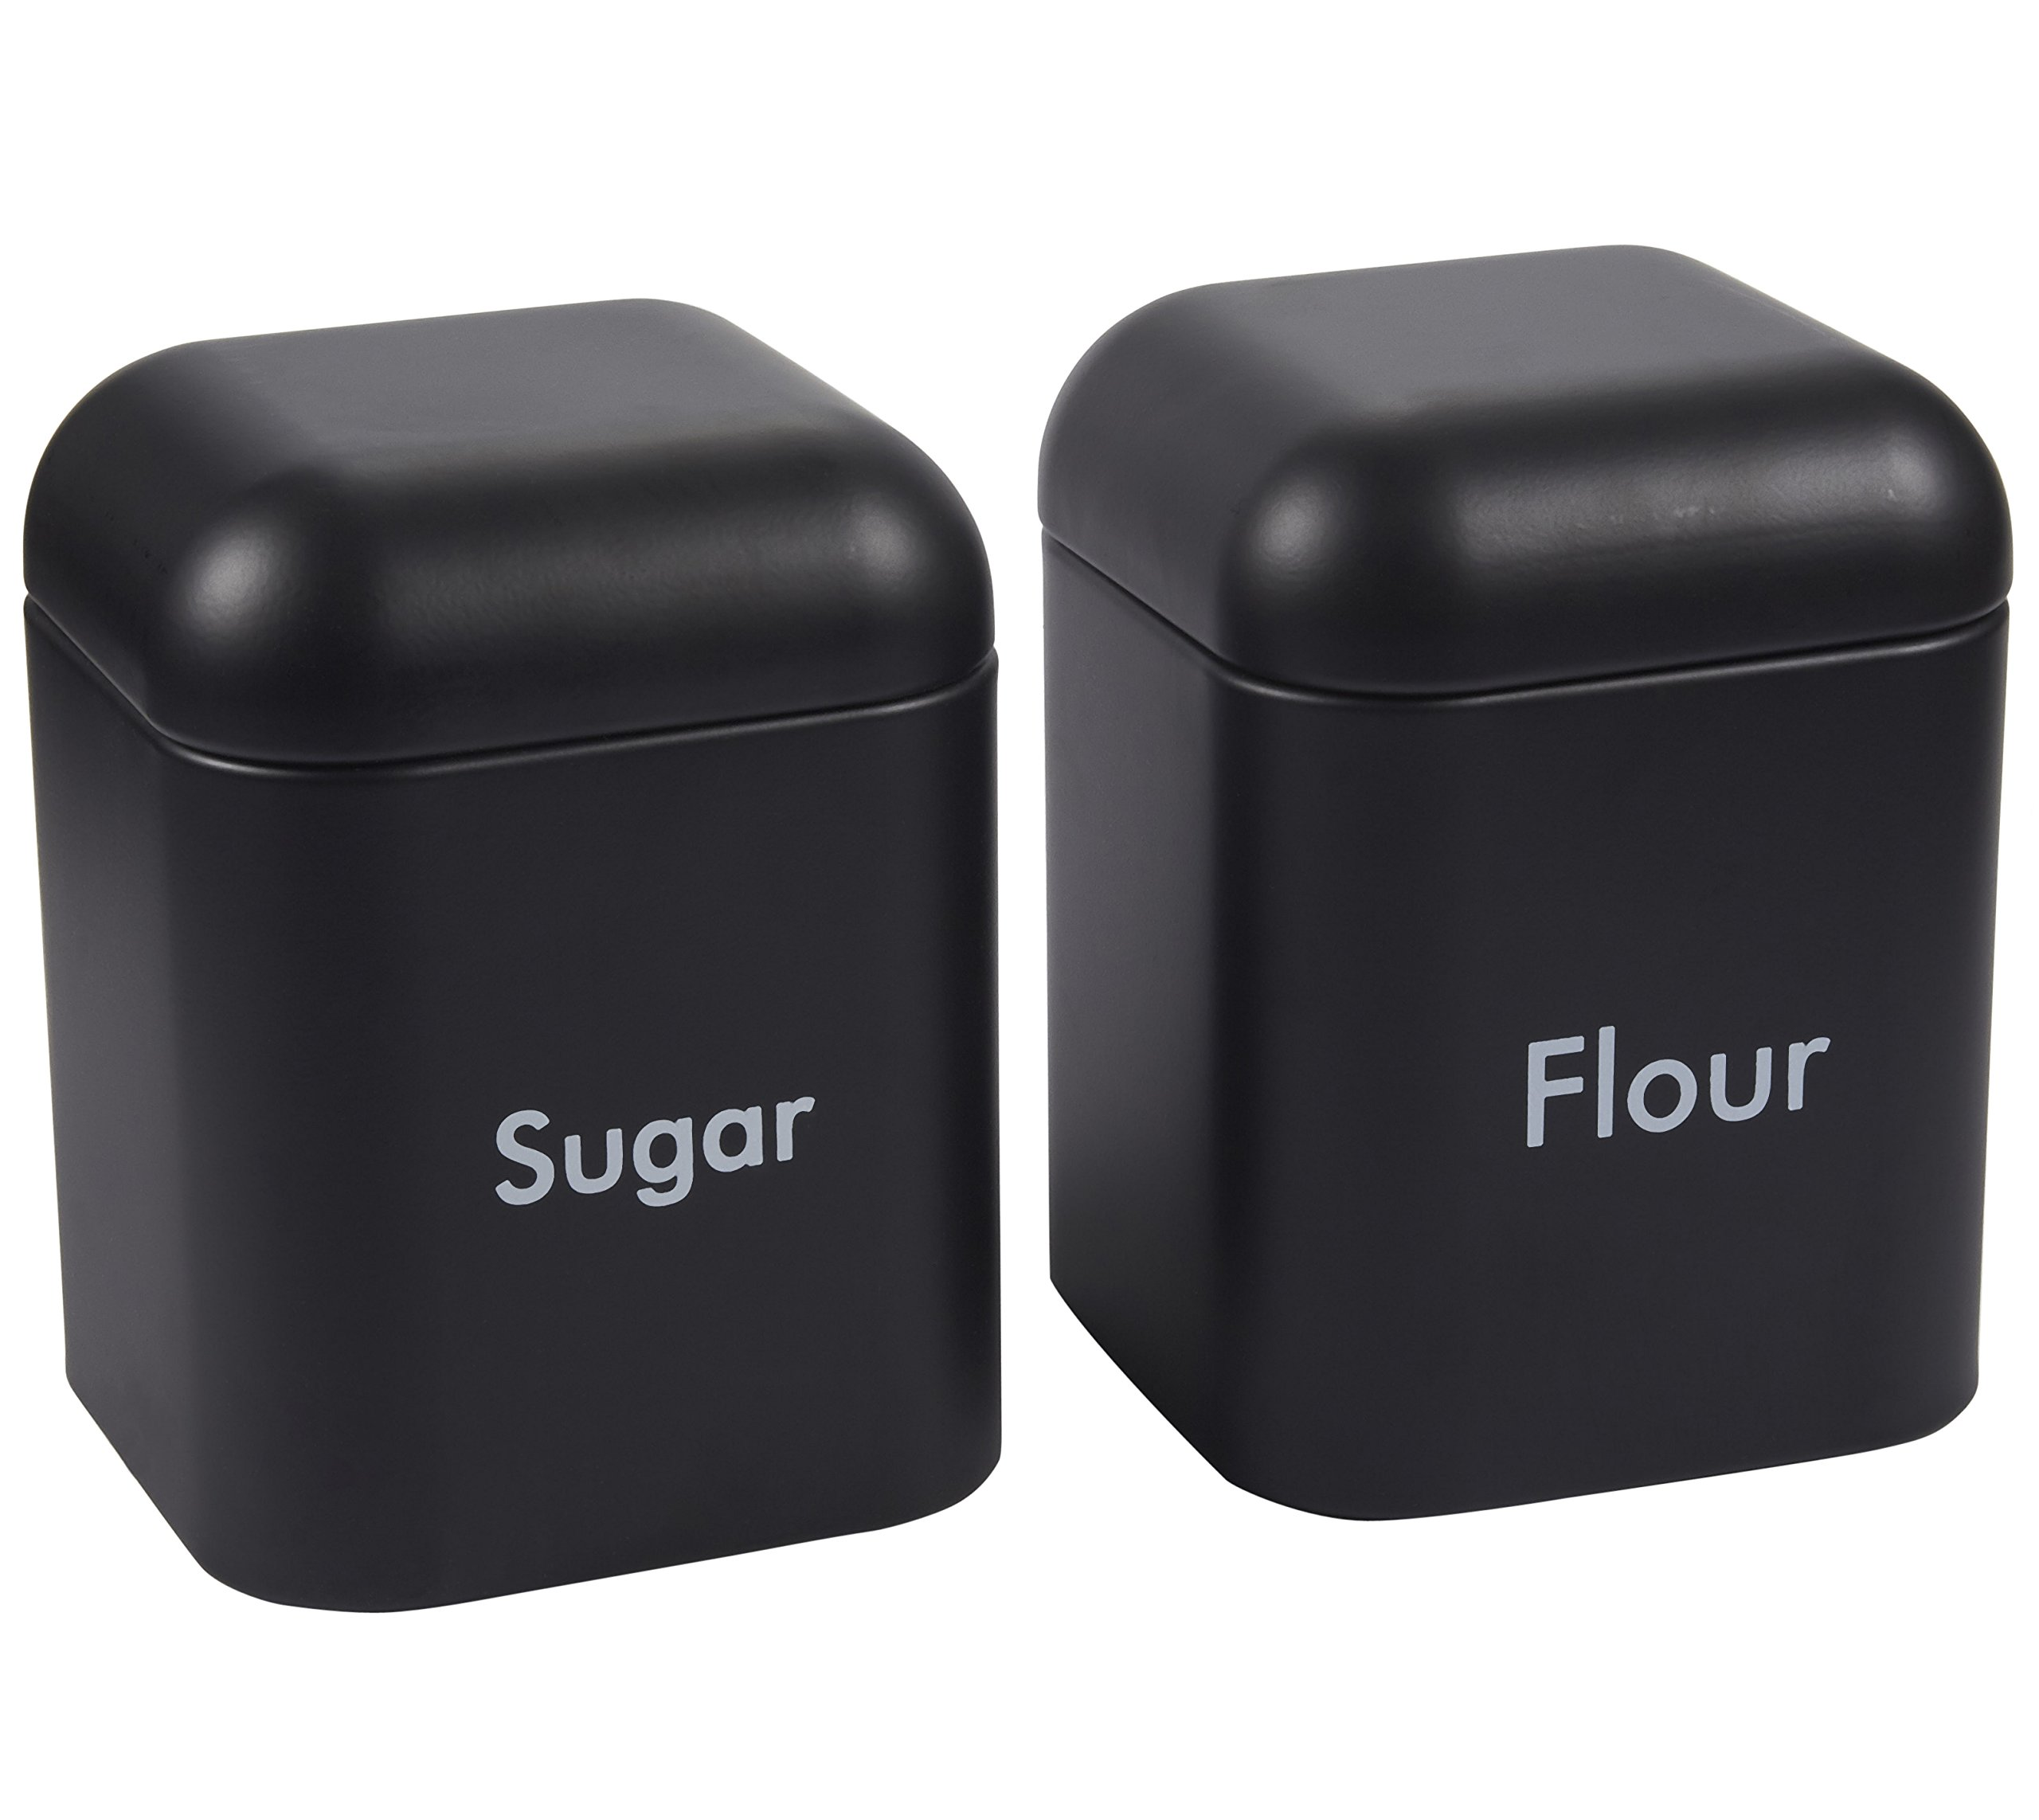 Juvale Kitchen Canister Set - 2-Piece Stainless Steel Sugar and Flour Storage Container Jars with Steel Lids, Black, 4.5 x 6 x 4.5 Inches